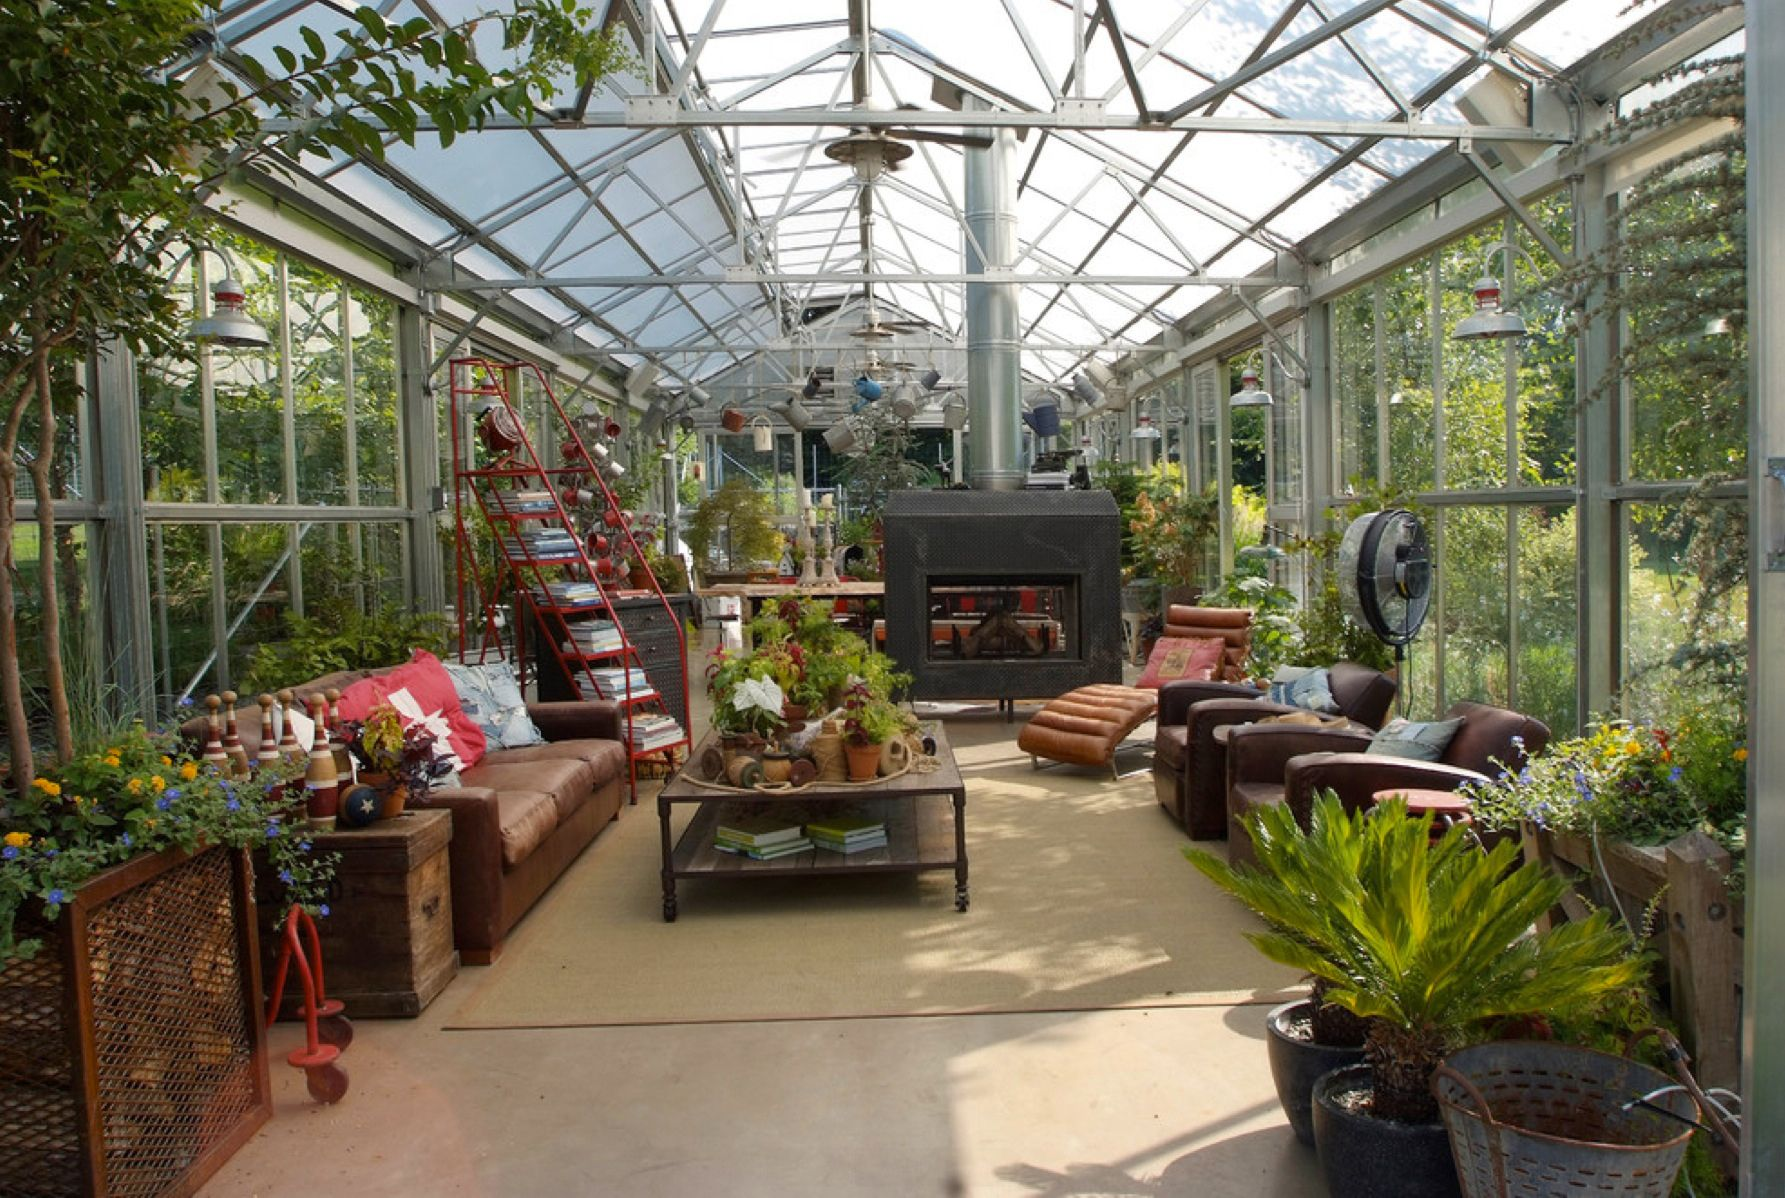 large greenhouse interior - http://garden-greenhouse.se